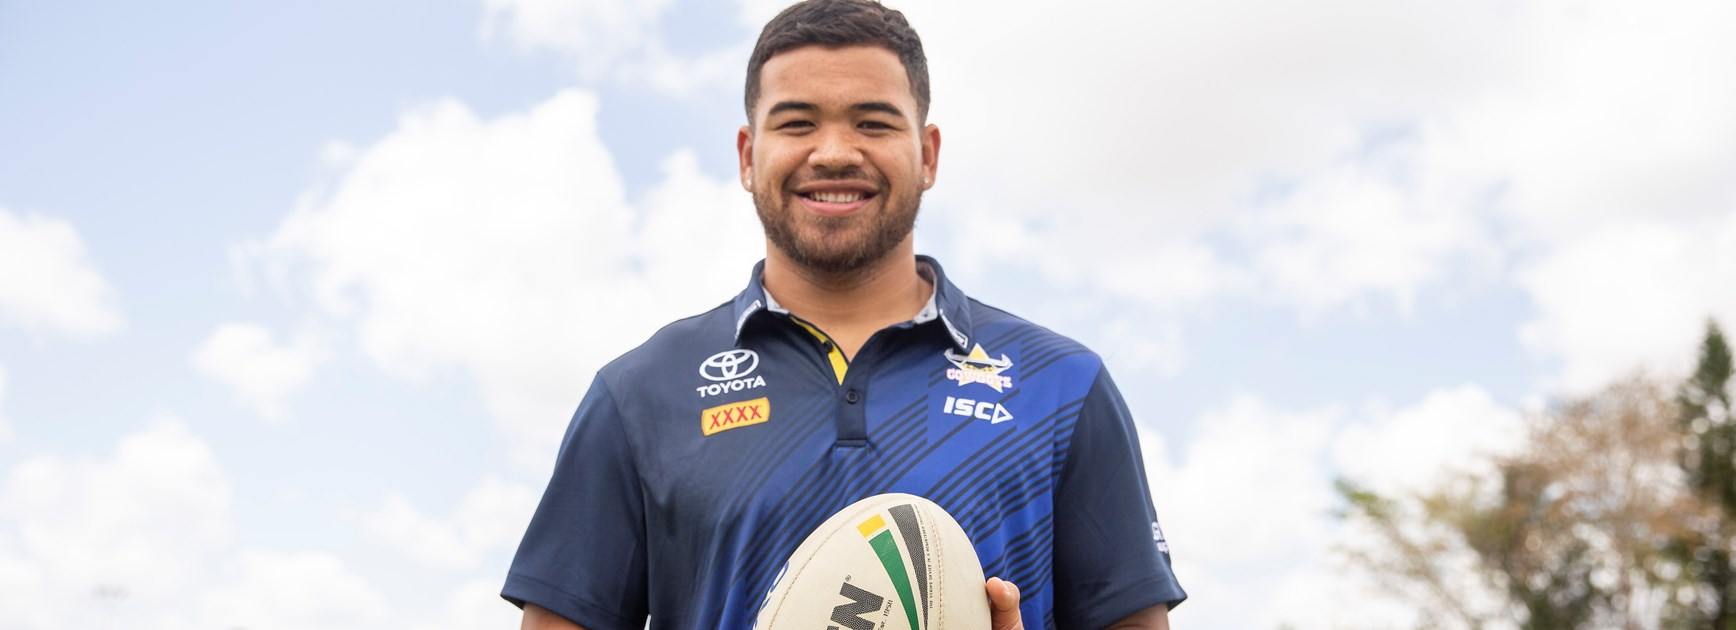 Cowboys sign Kiwi international Marsters